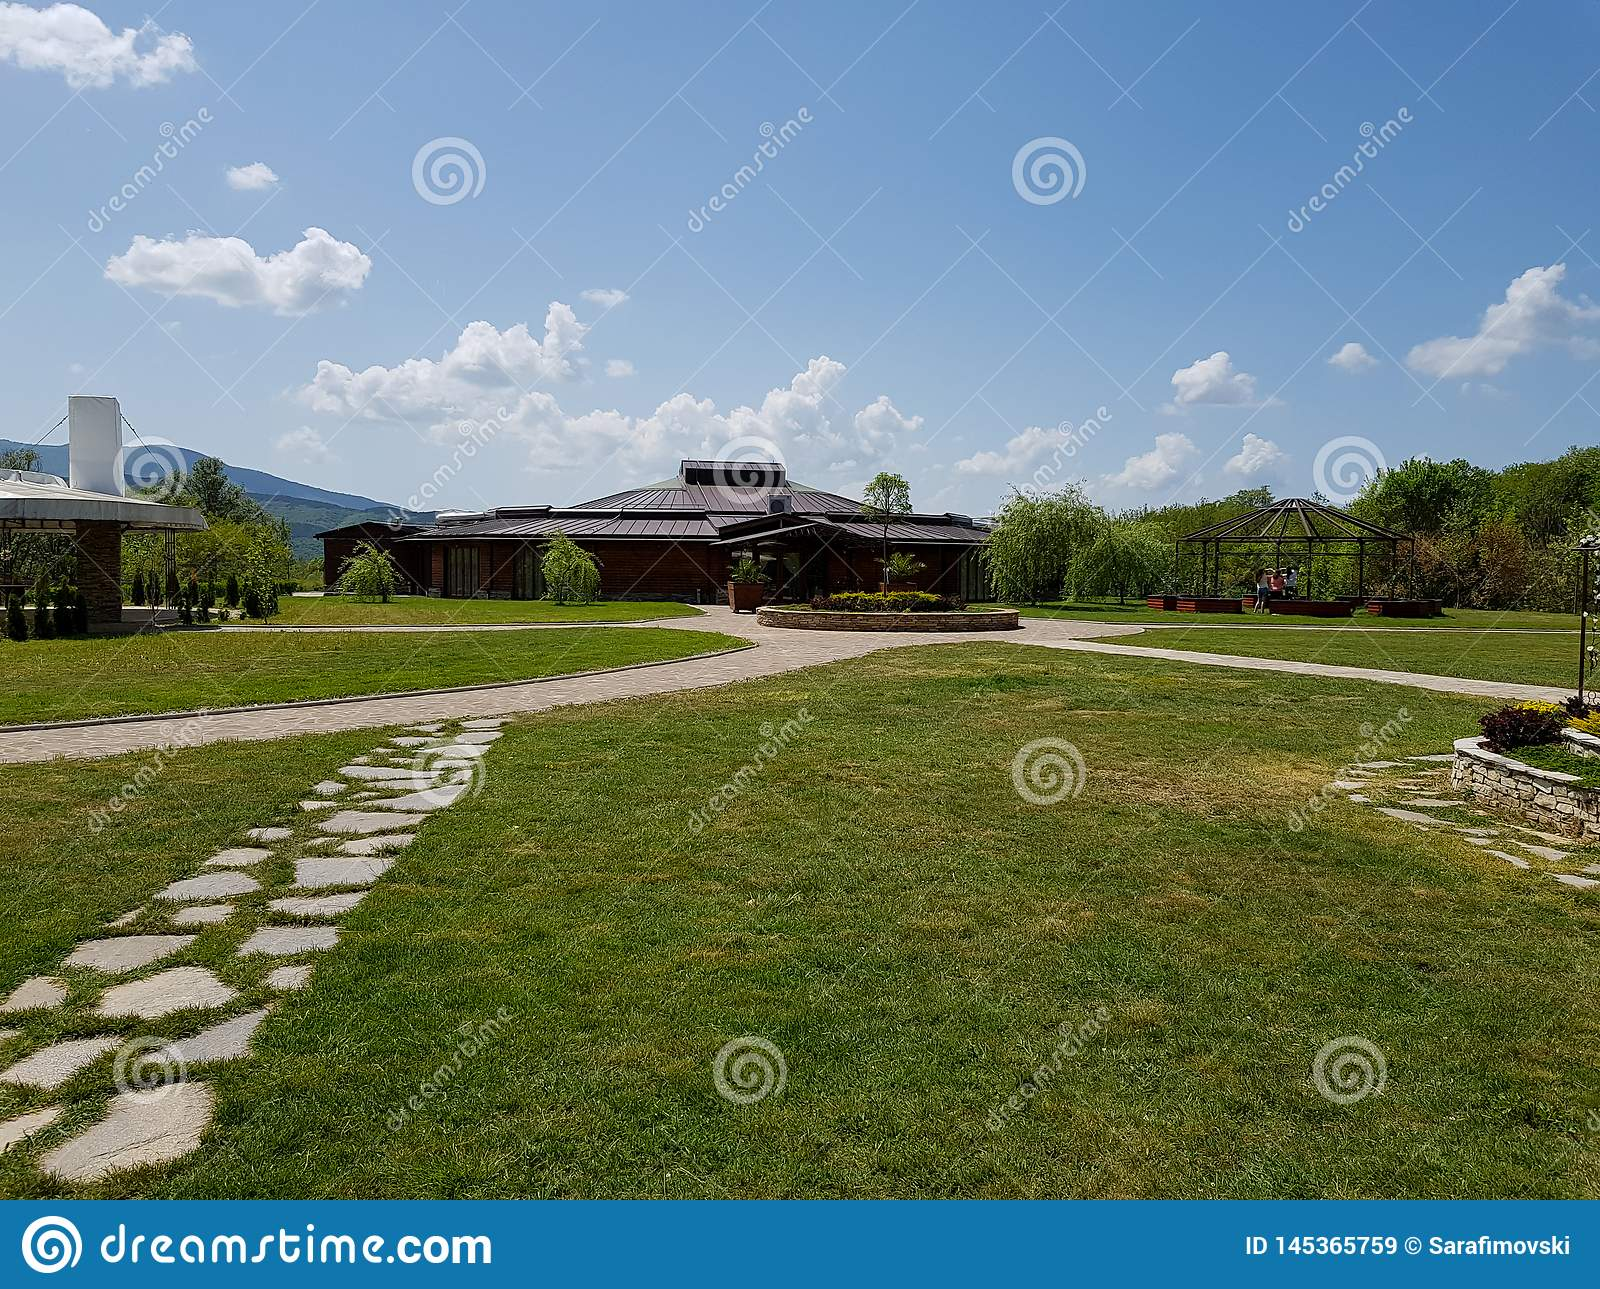 Wooden ceremony, wedding restaurant with grass and roads made of stones.